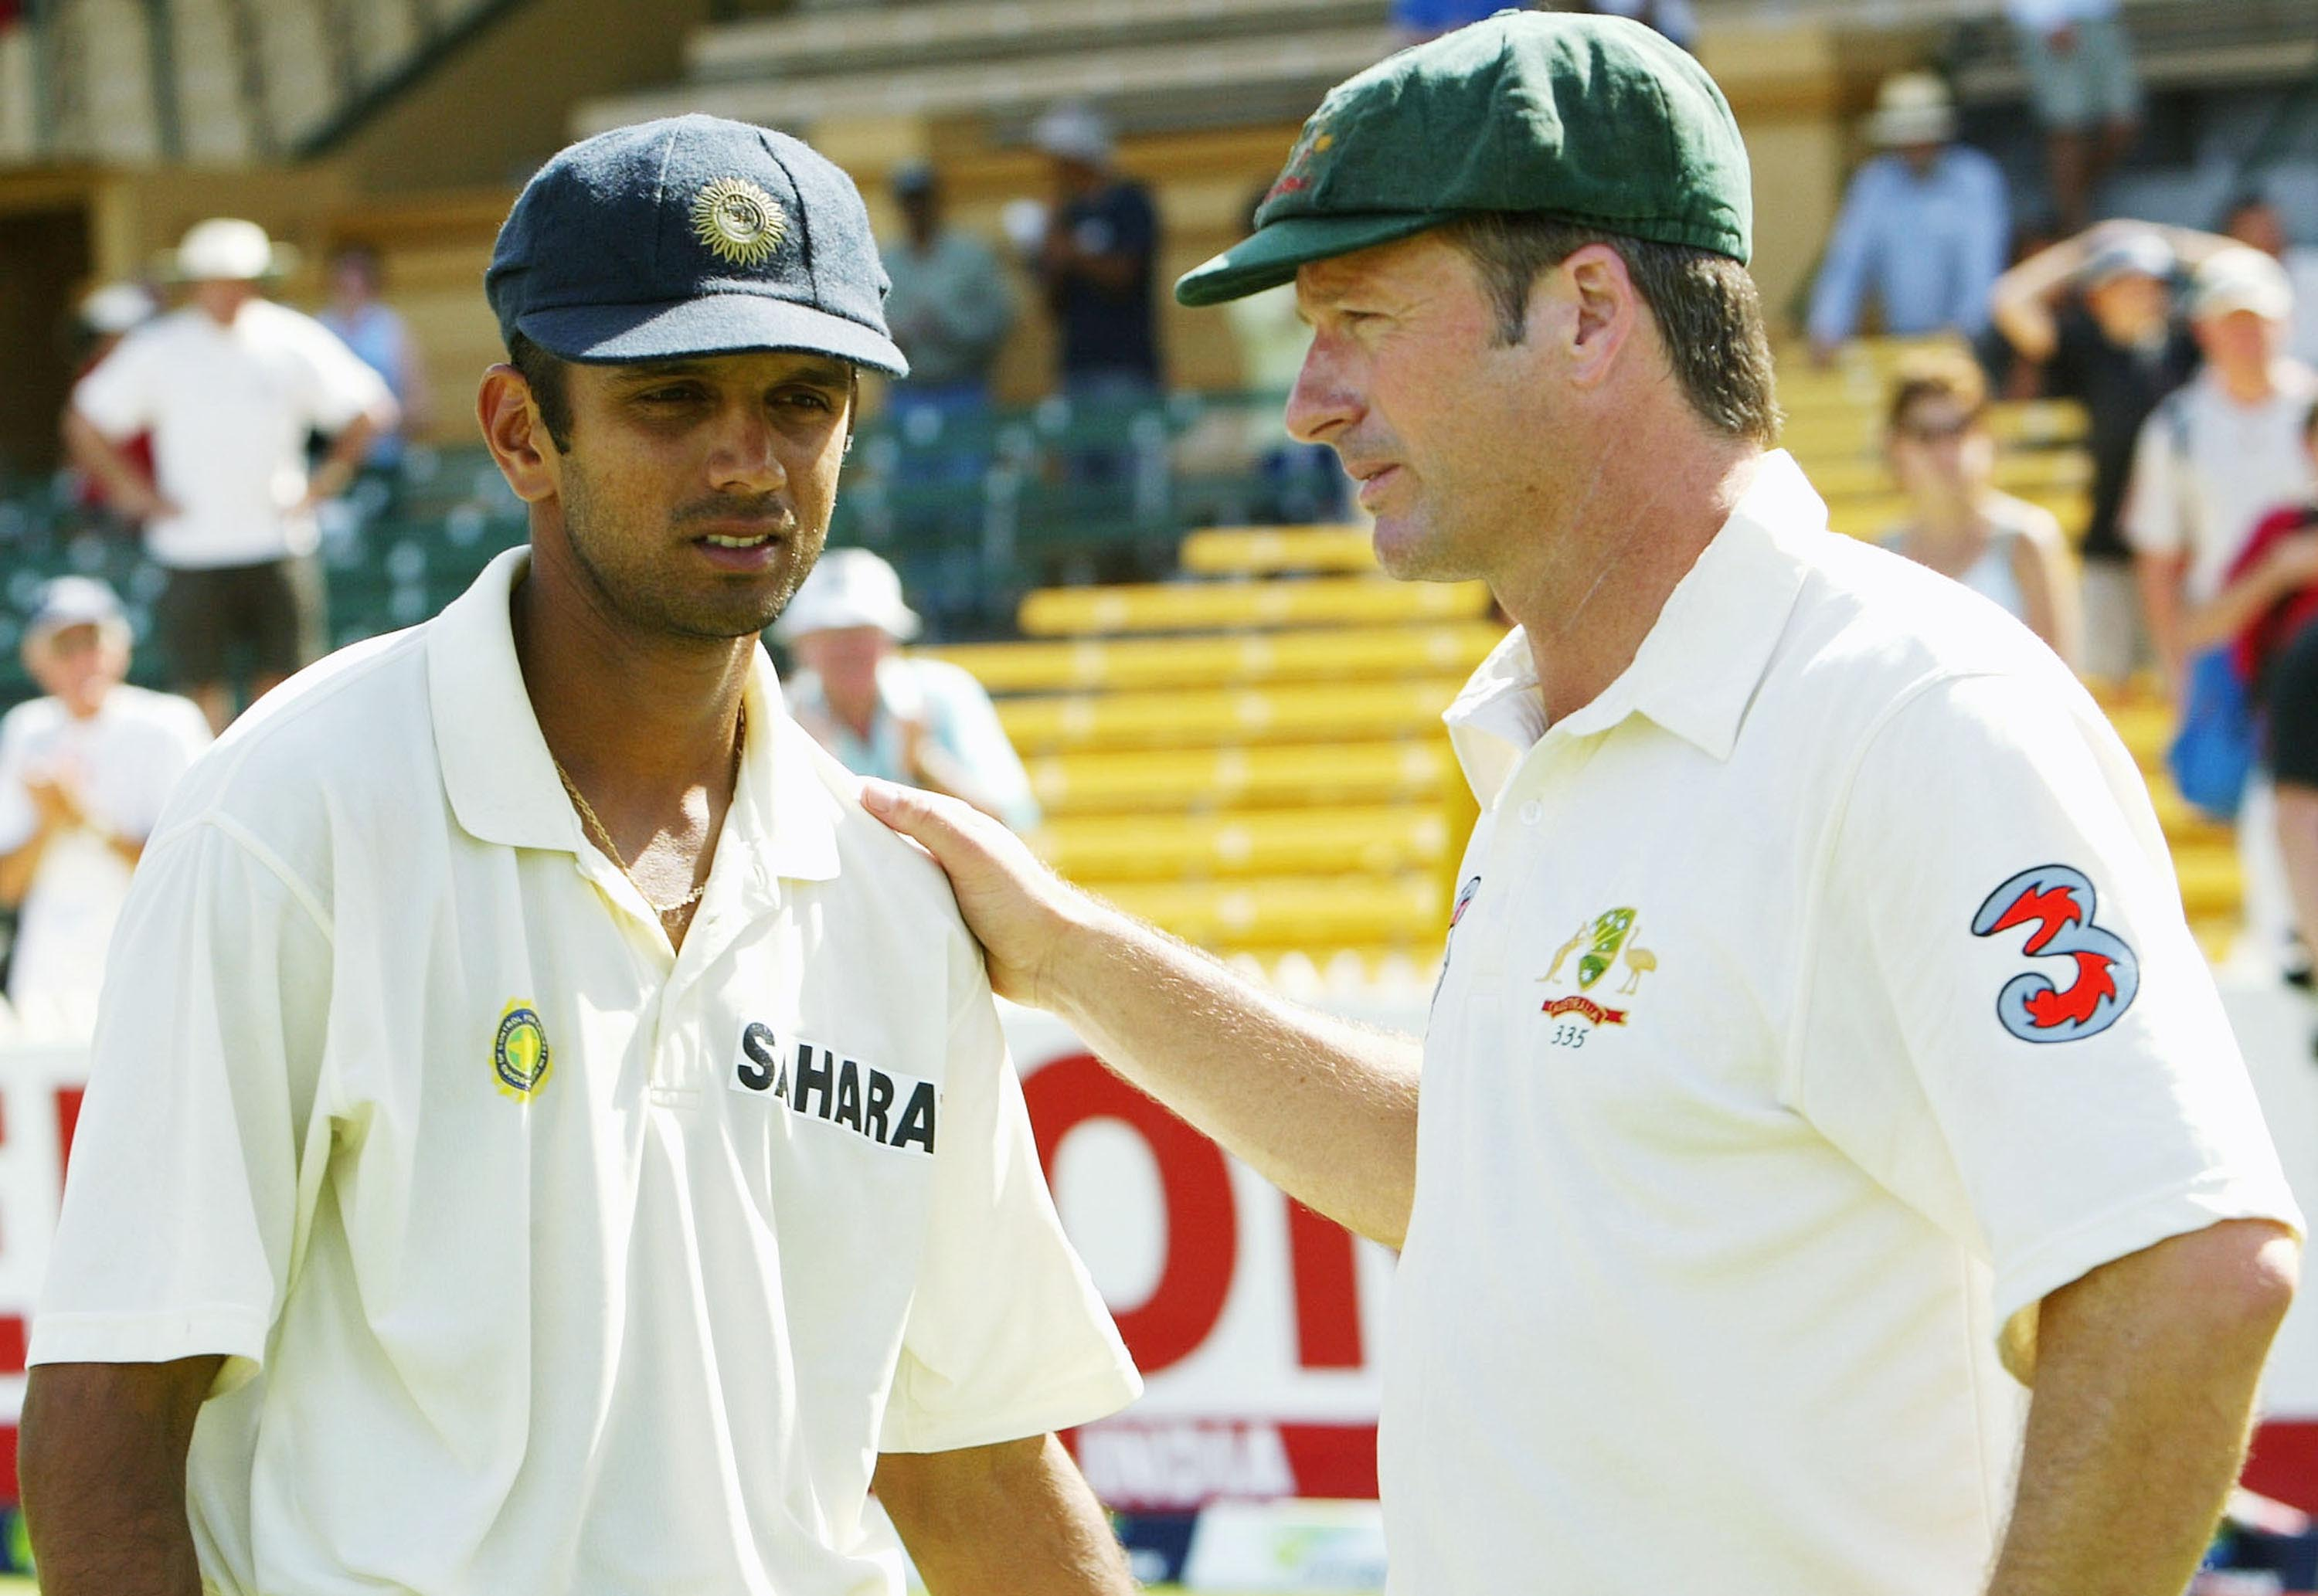 With Indian champion Rahul Dravid // Getty